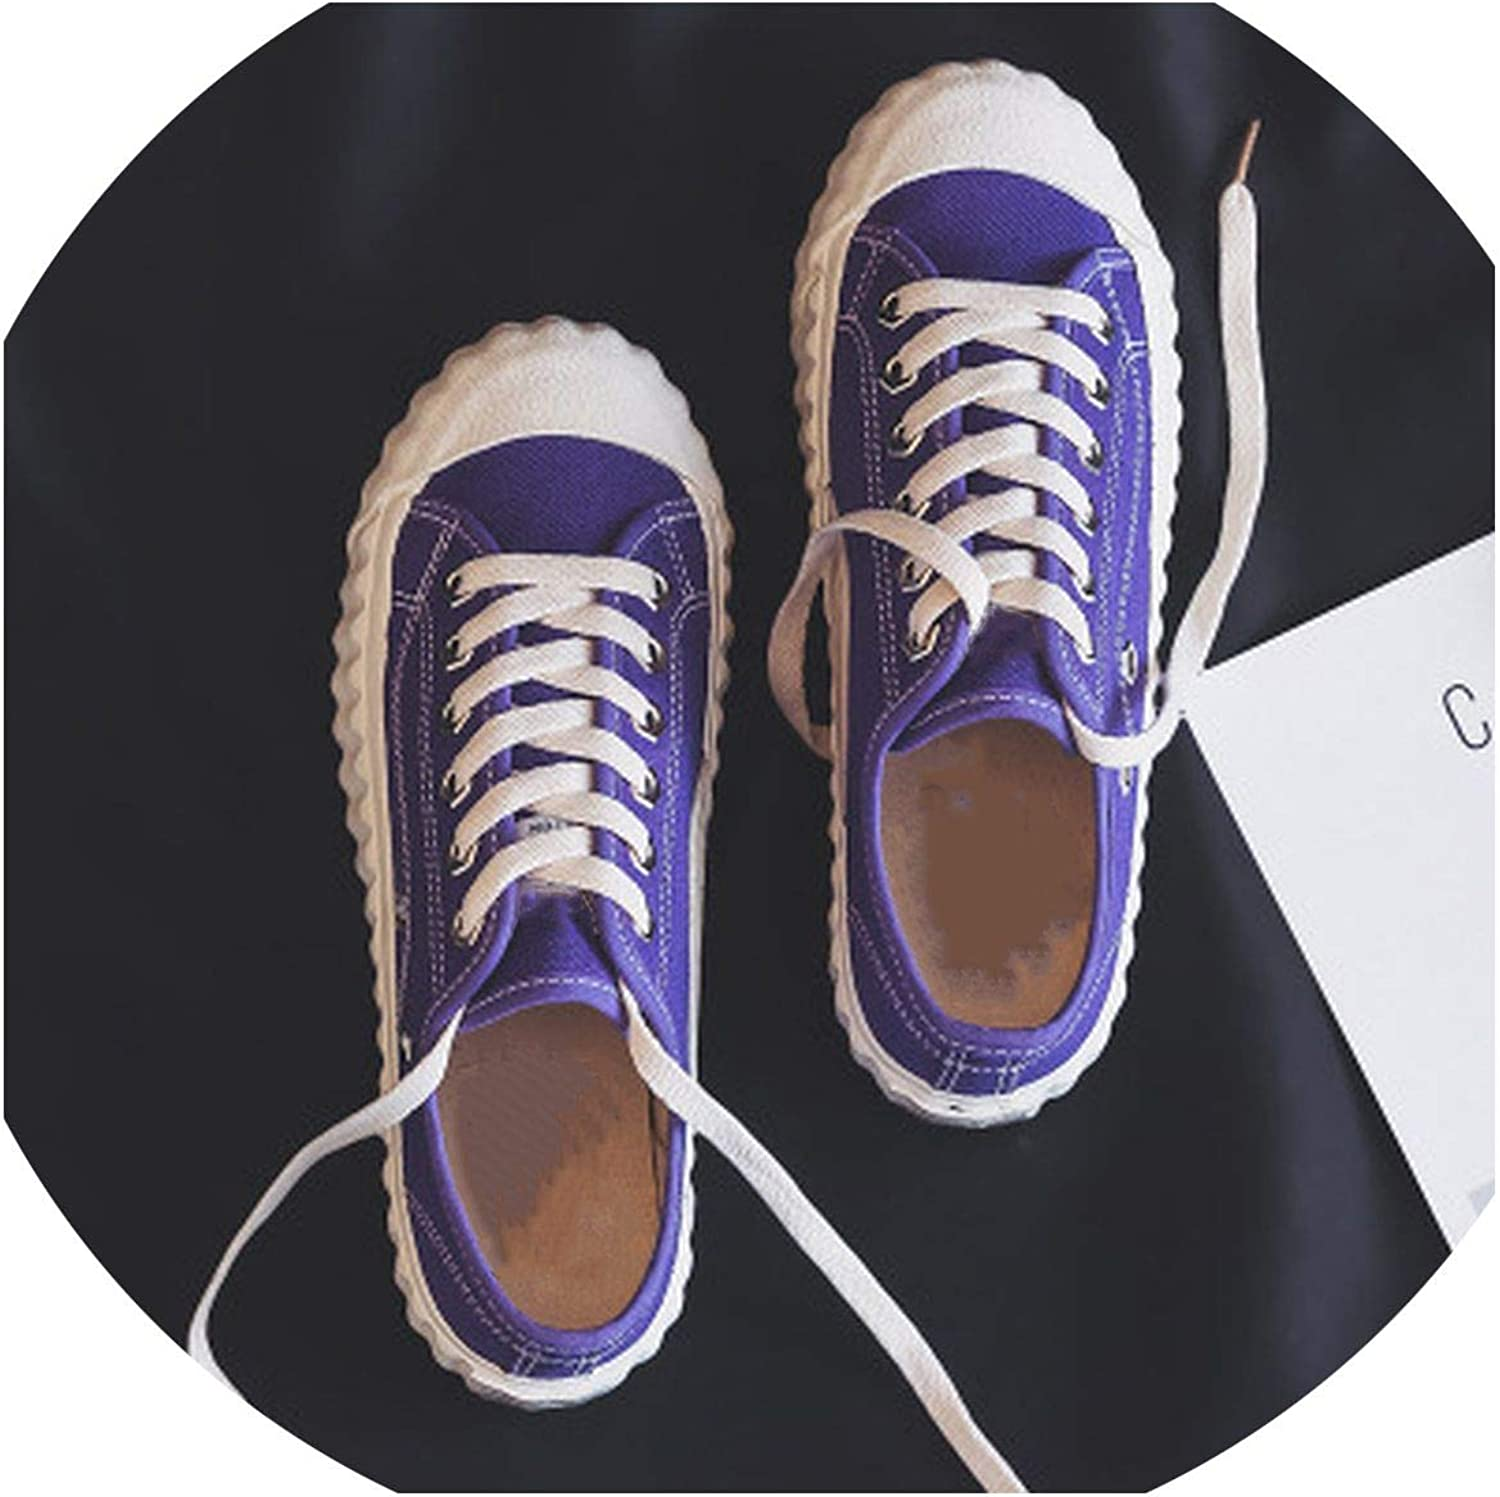 Women Sneakers Candy color Lady Stylish shoes Vulcanized Lace Up Flat Heel